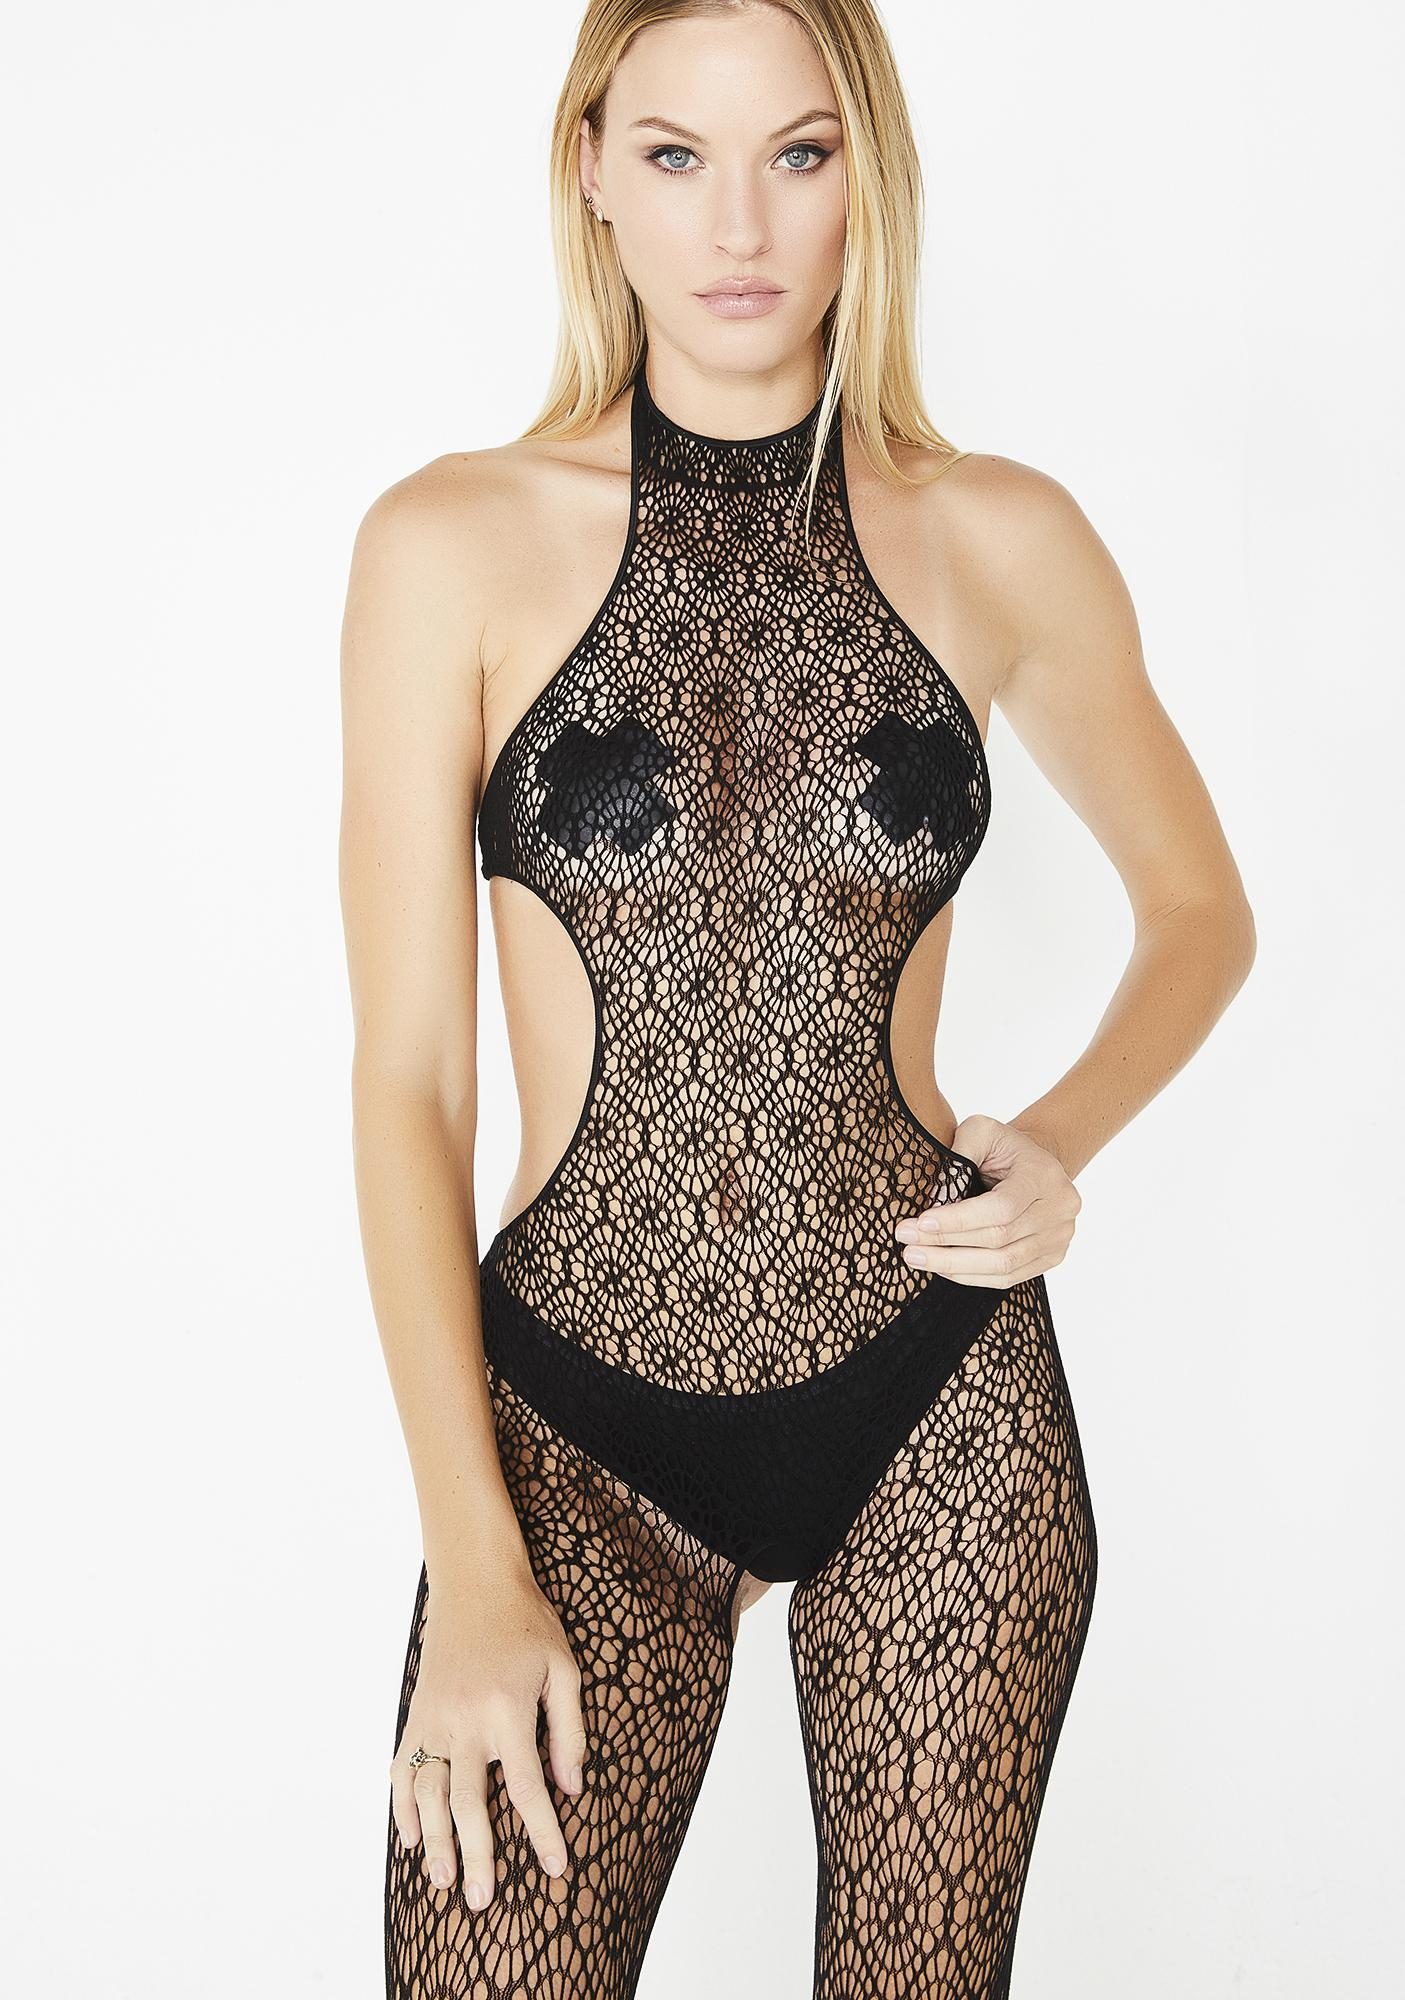 976245c53 Halter Crotchless Crochet Bodystocking